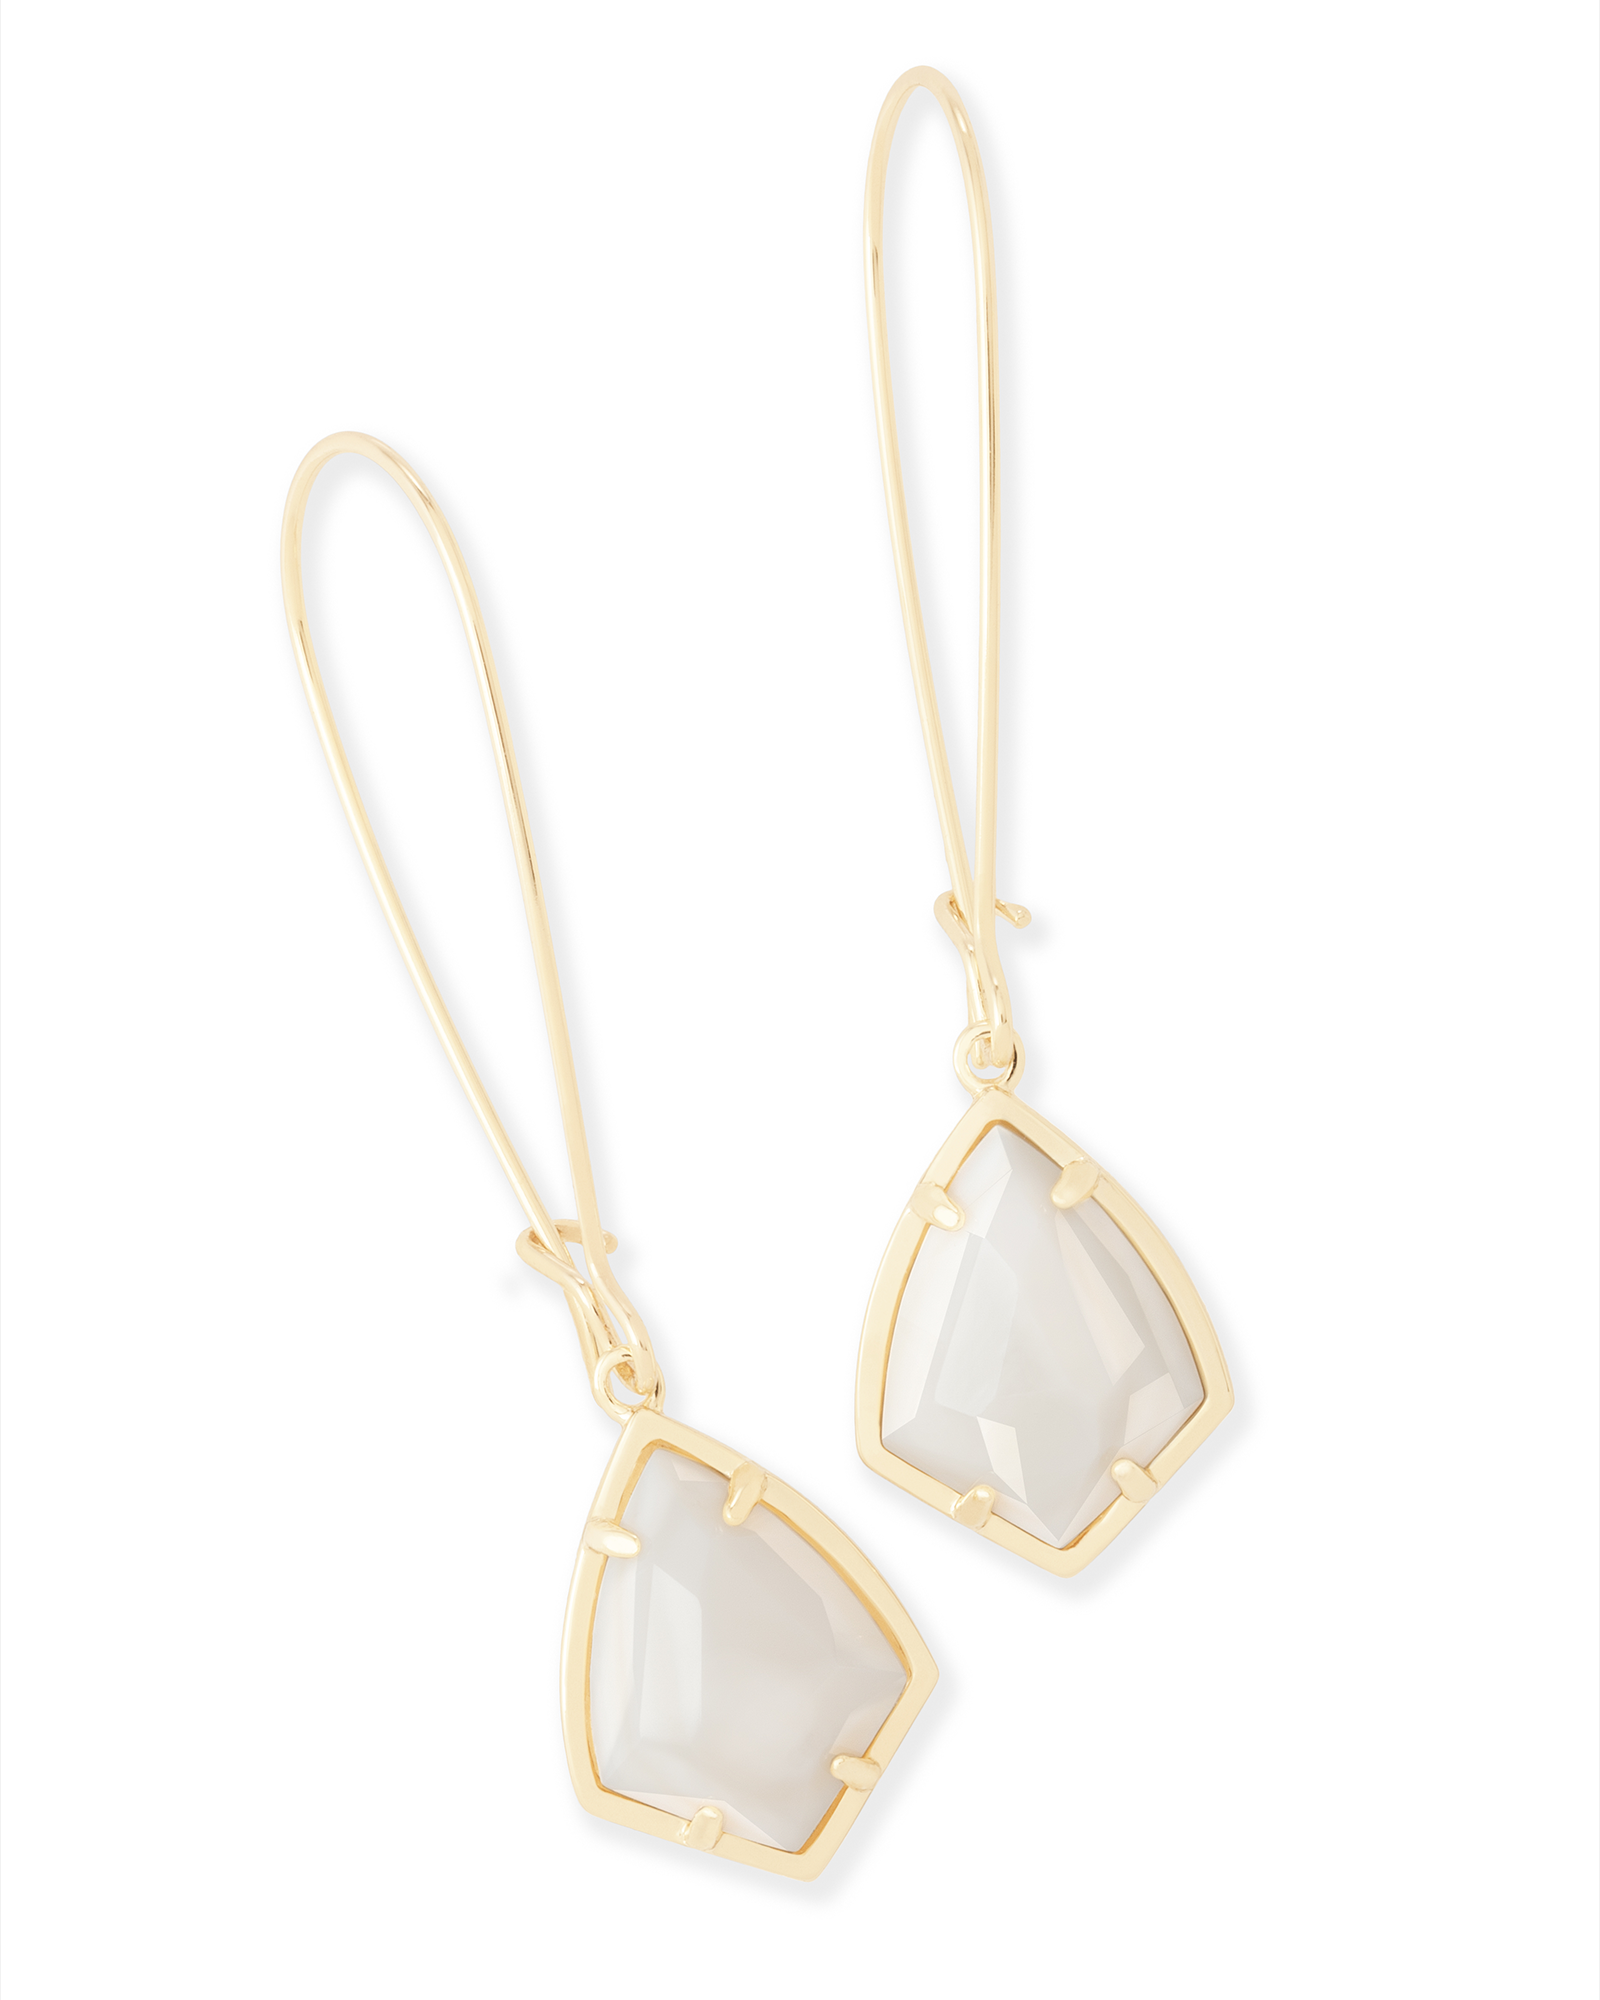 Carinne Gold Drop Earrings in White Pearl